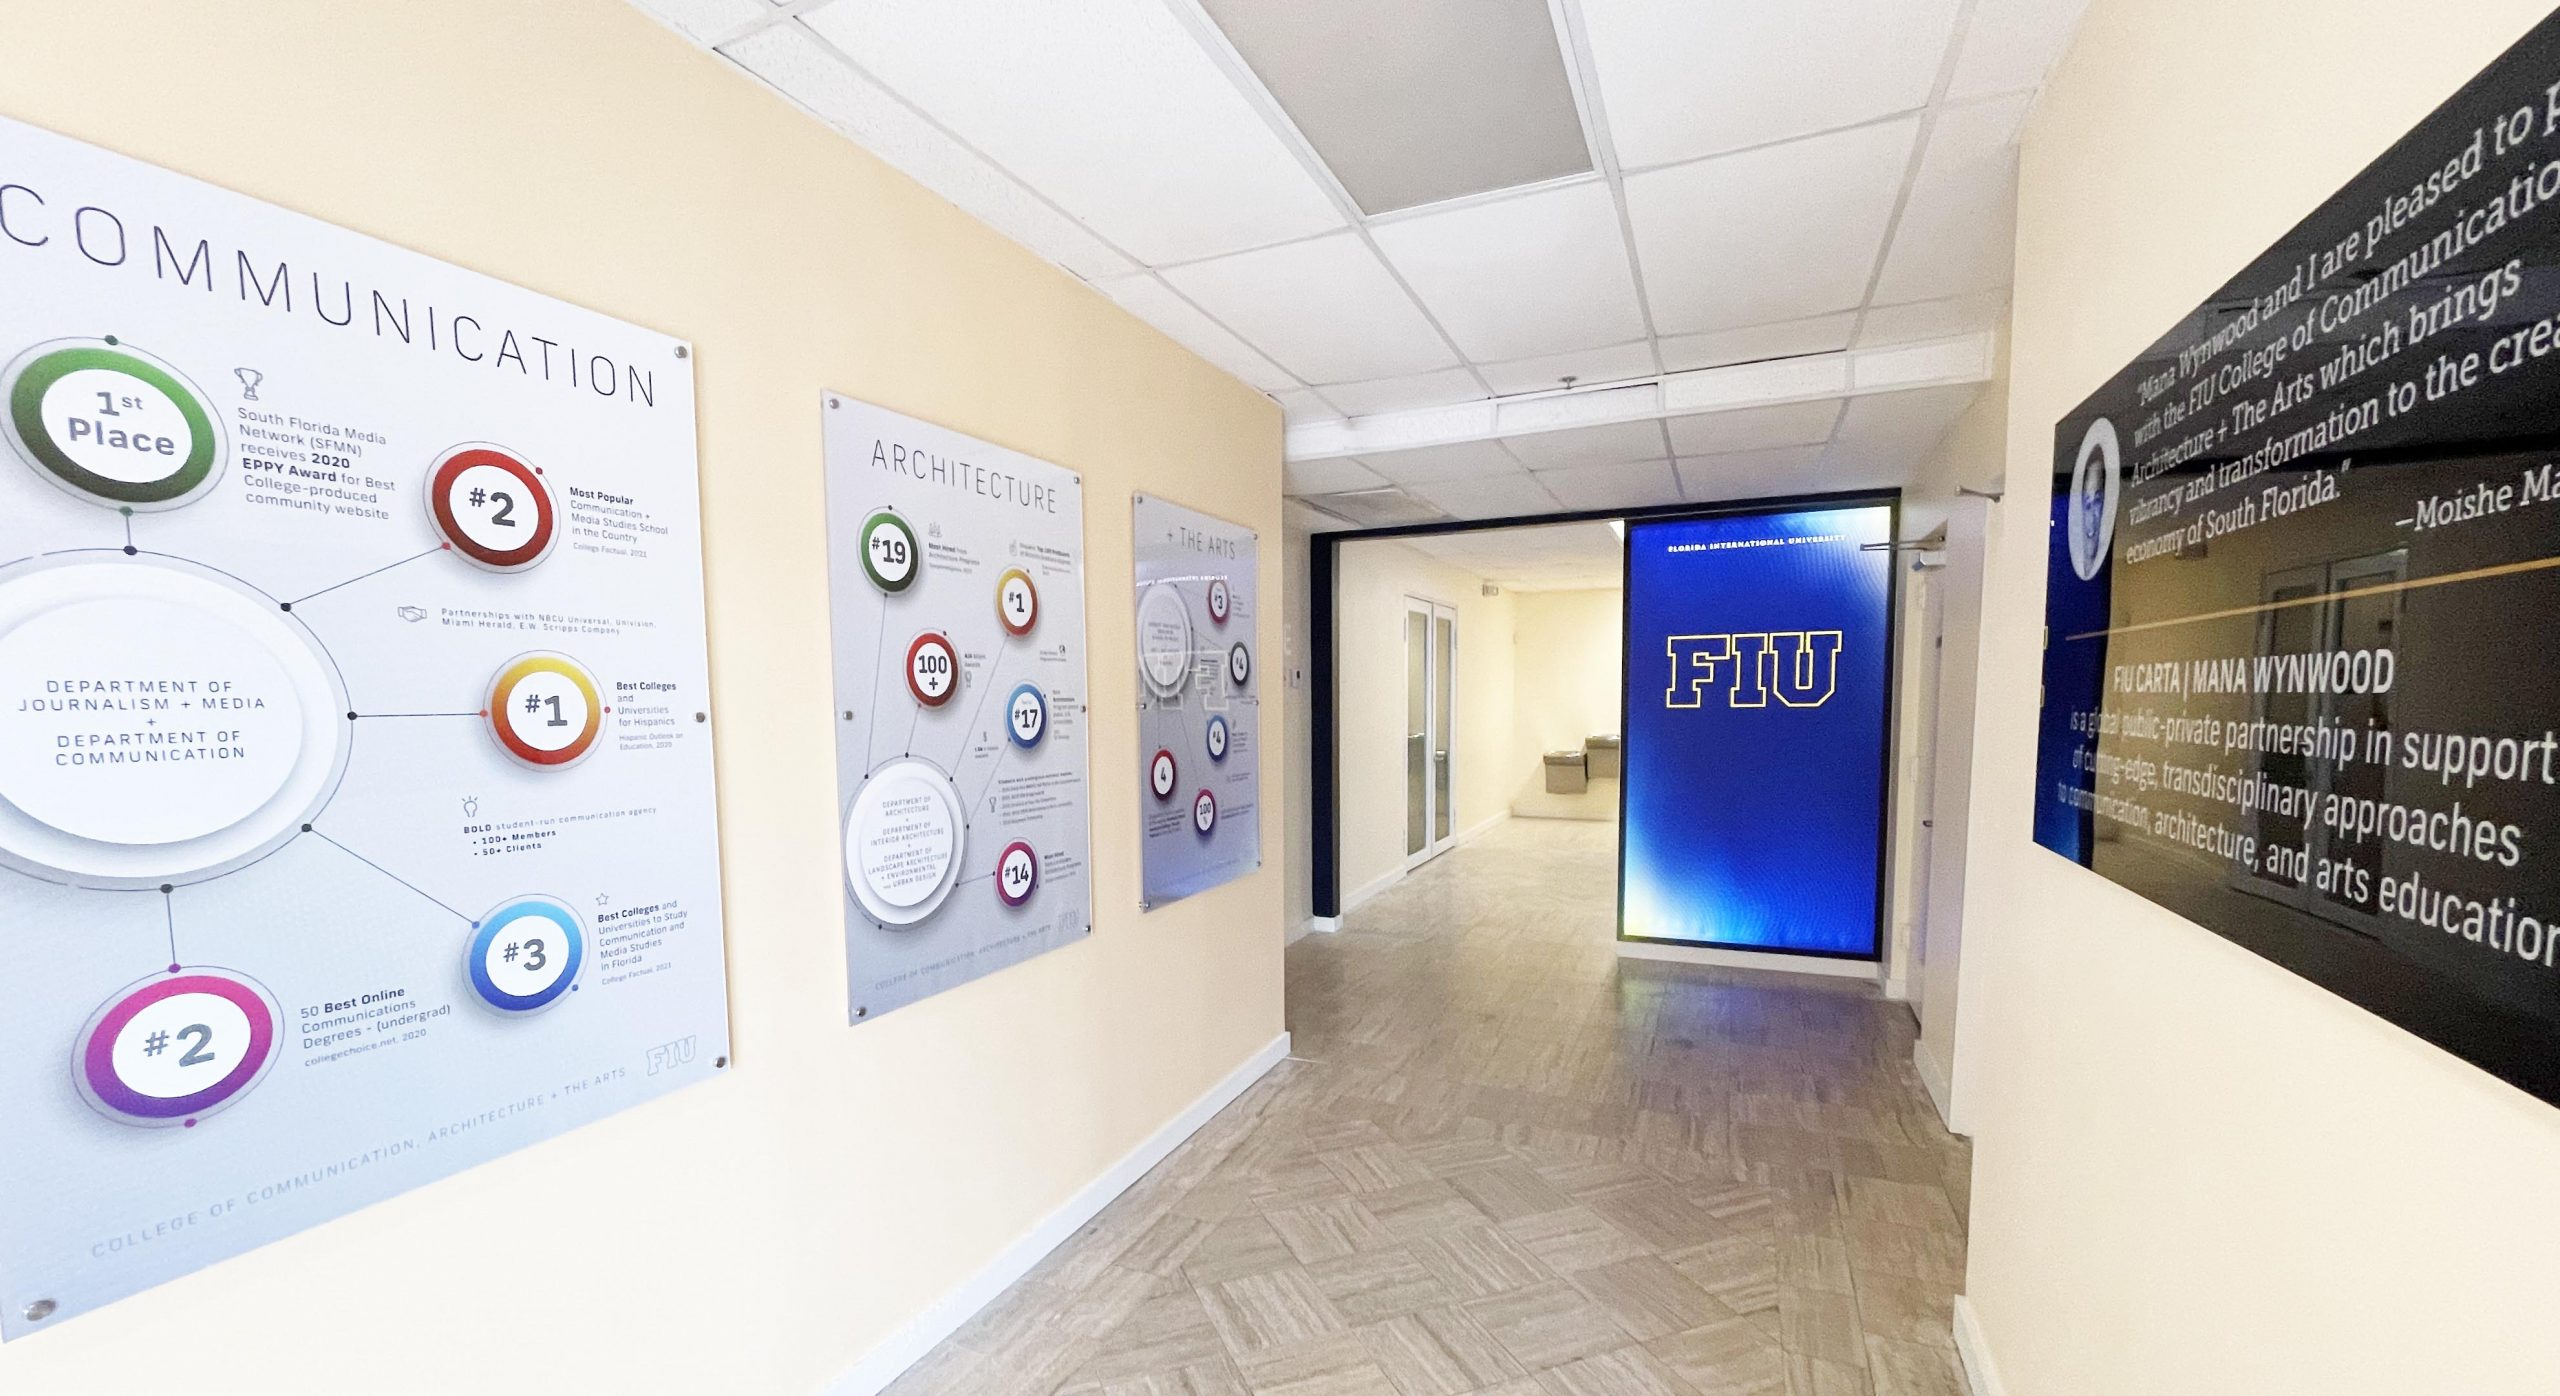 Image of the entry to the space with posters on the walls